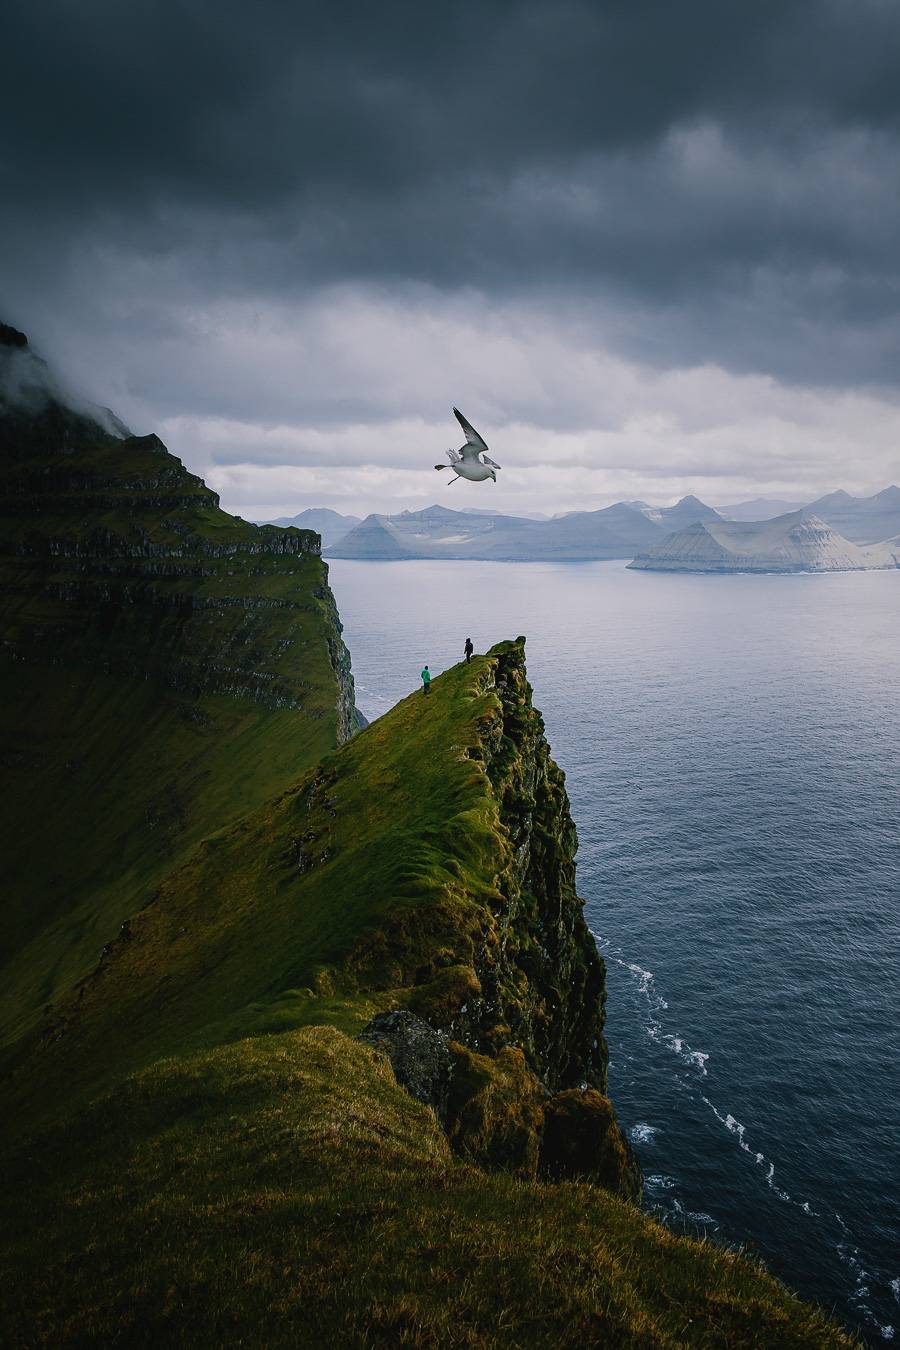 A bird flying high over the cliffs and mountains in Faroe Islands